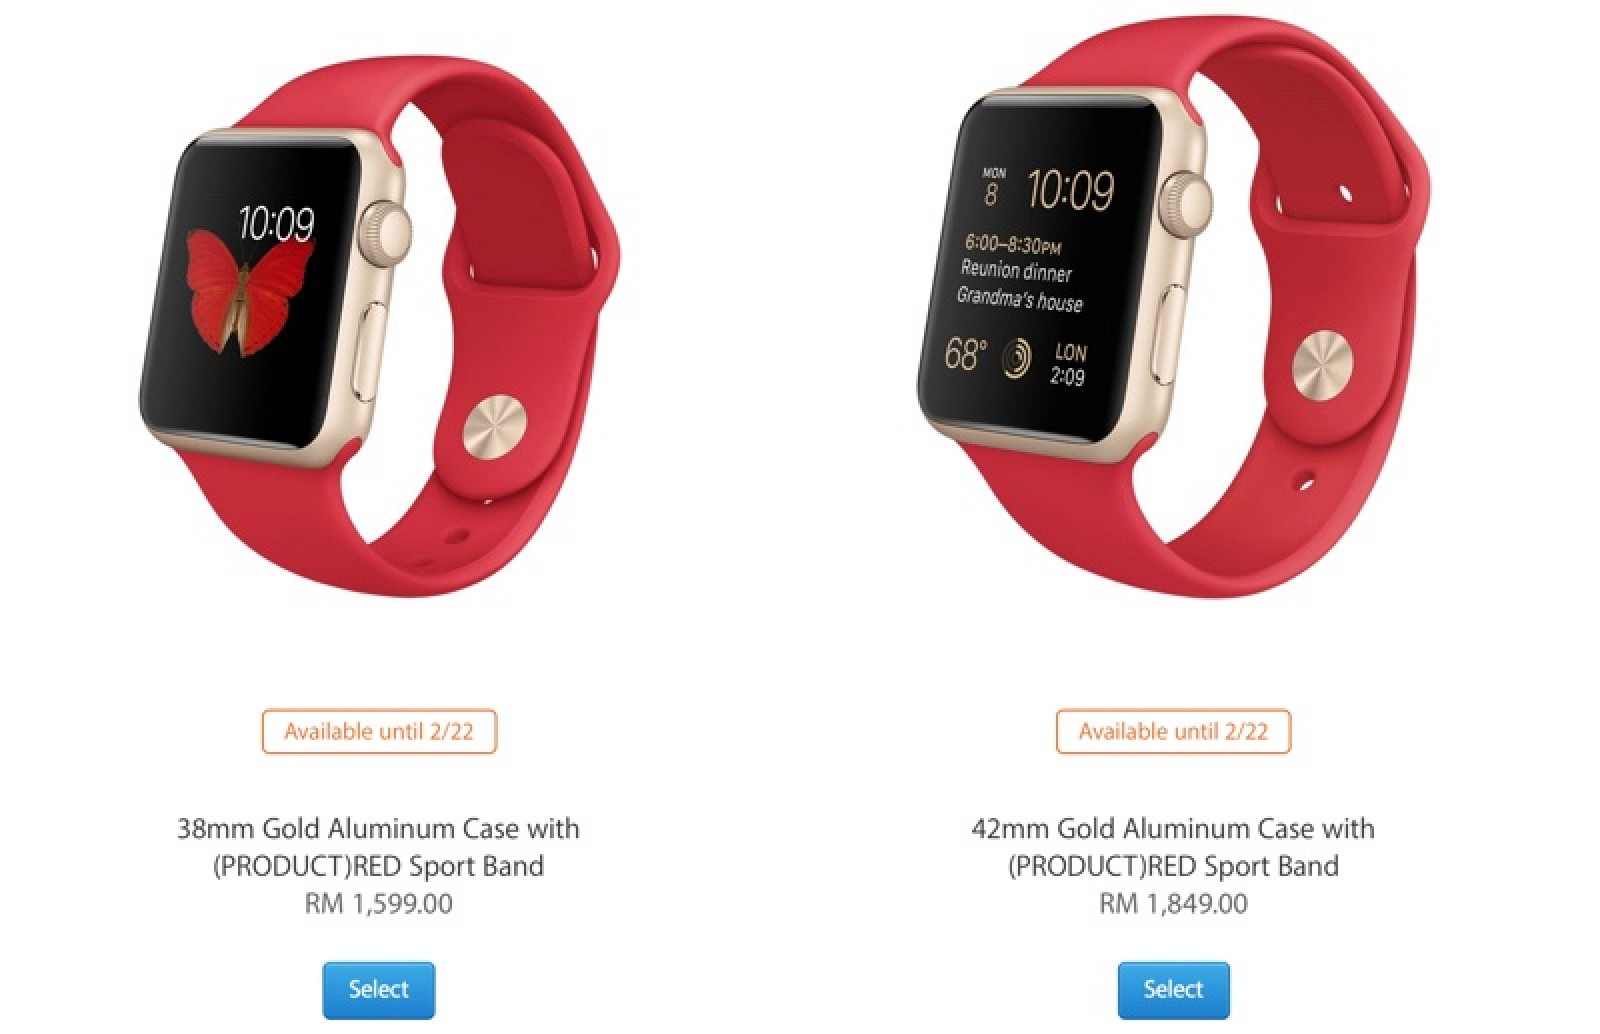 no sale tax bafe0 6b739 Apple Watch Launches in Malaysia, Coming to Portugal, Hungary and ...